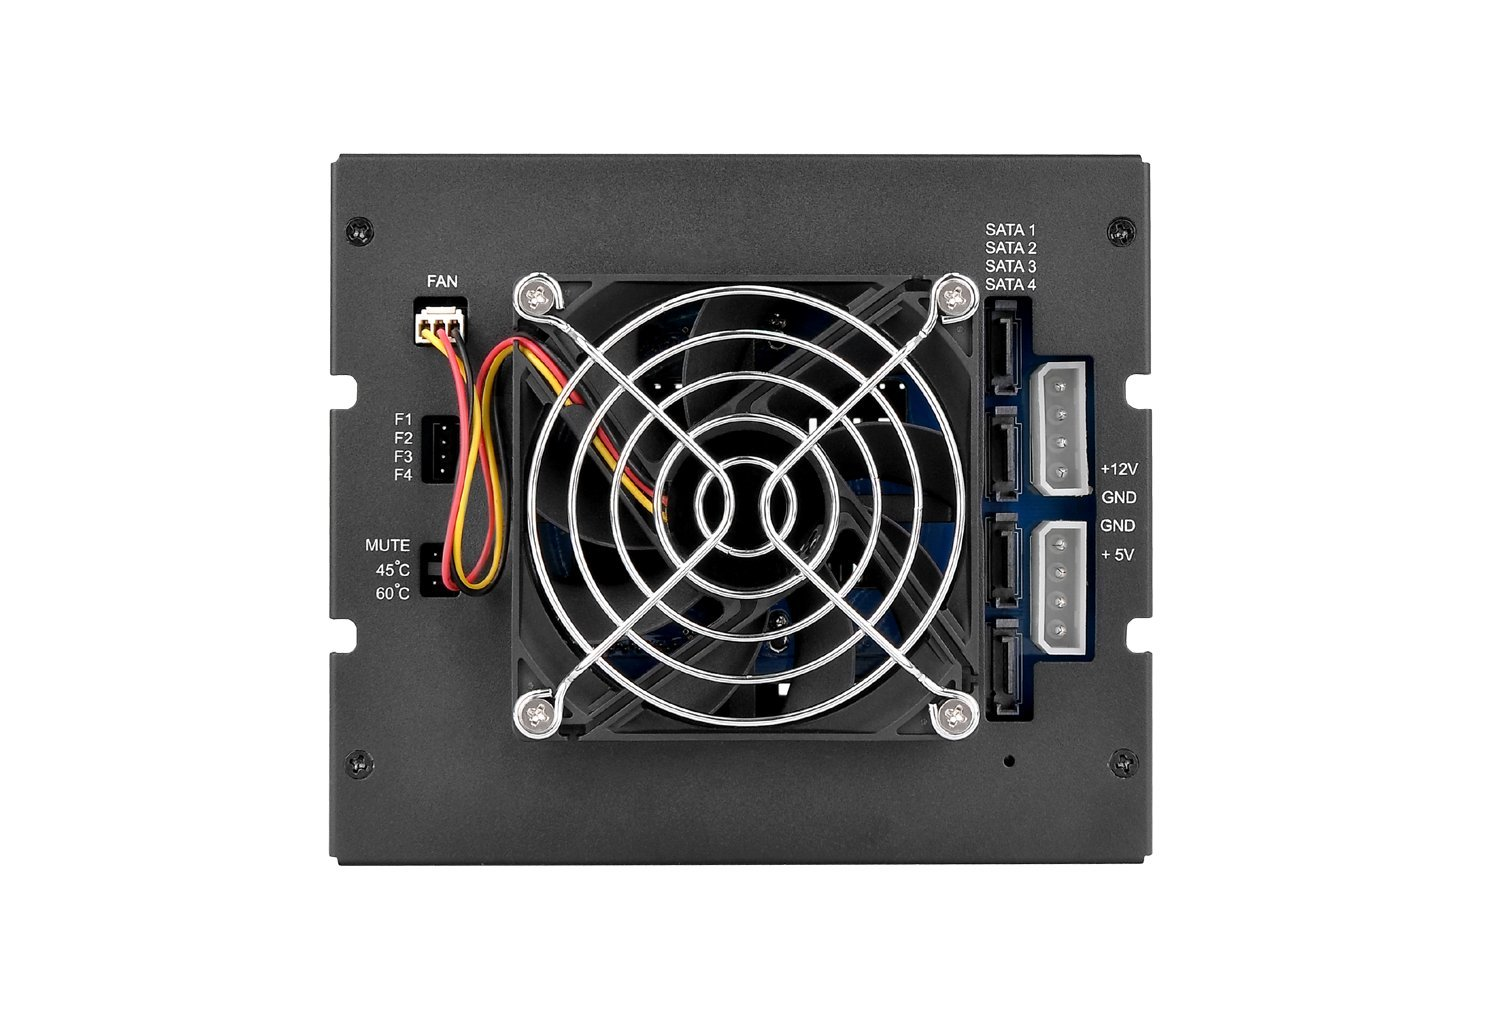 """Max 3504 4-Bay Hot Swap Mobile Rack/Enclosure with 80mm Cooling Fan, 4 X 2.5""""/3.5'' HDDs/SSDs, Sata I/II/III/SAS 6Gbps, 3 X 5.25"""" Bay"""